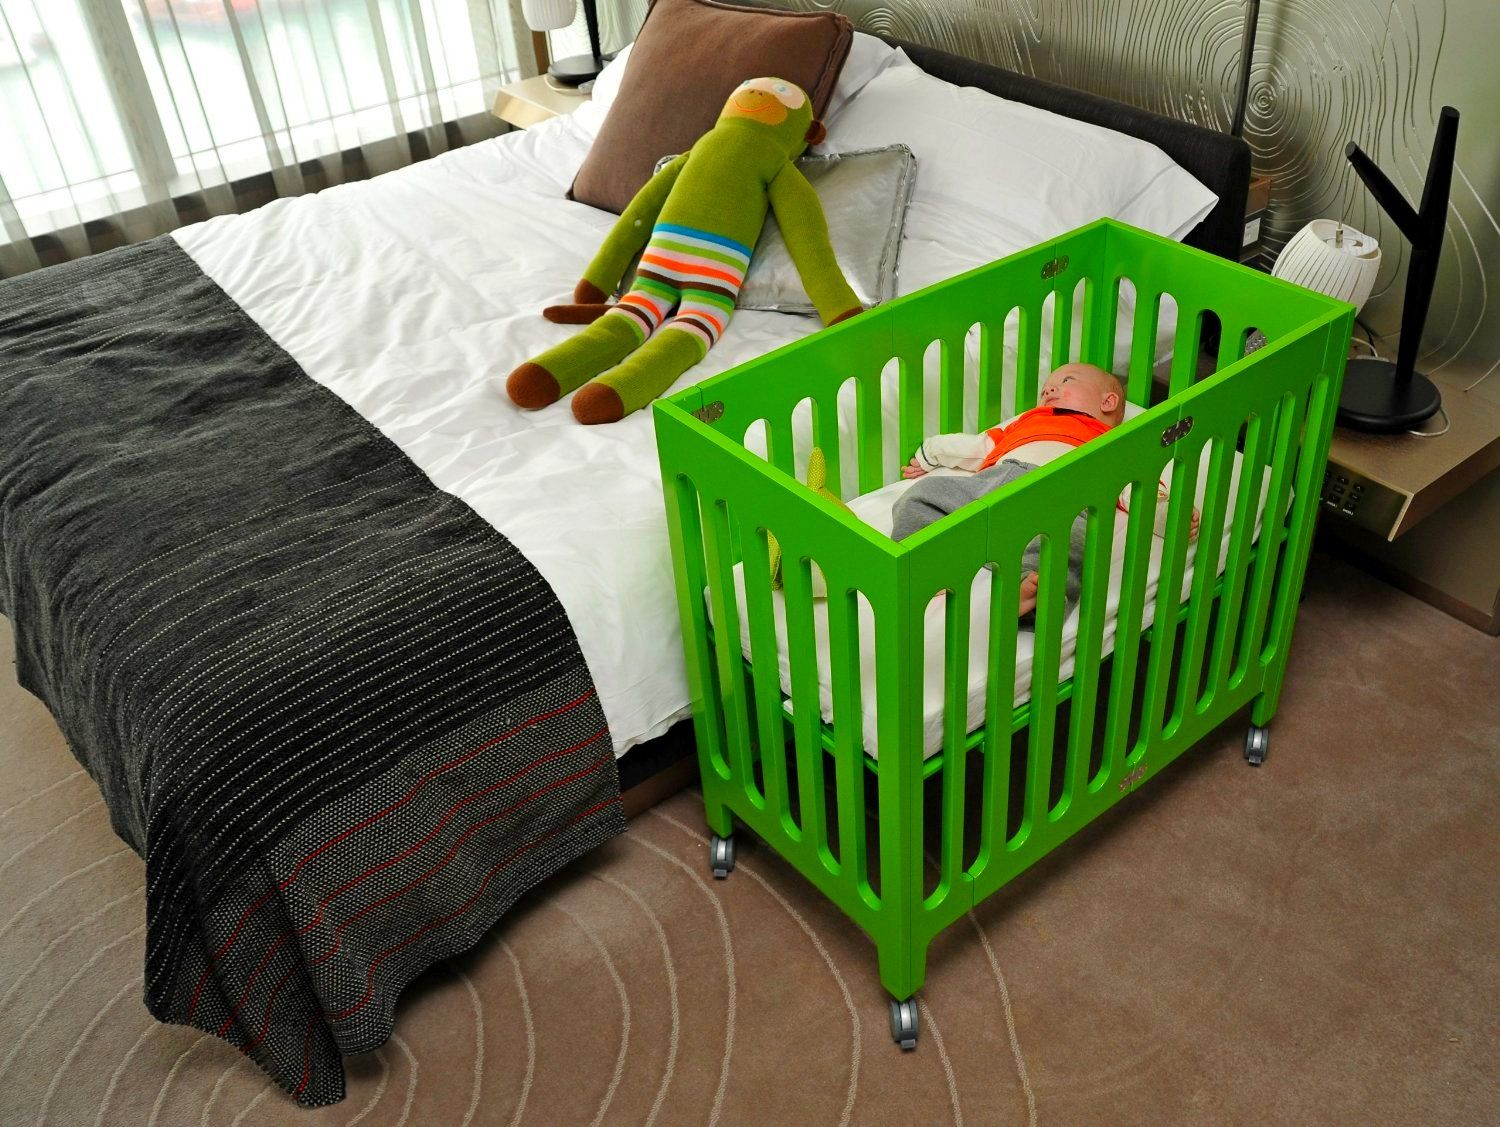 Quite Good Small Cribs For Small Spaces Cribs For Small